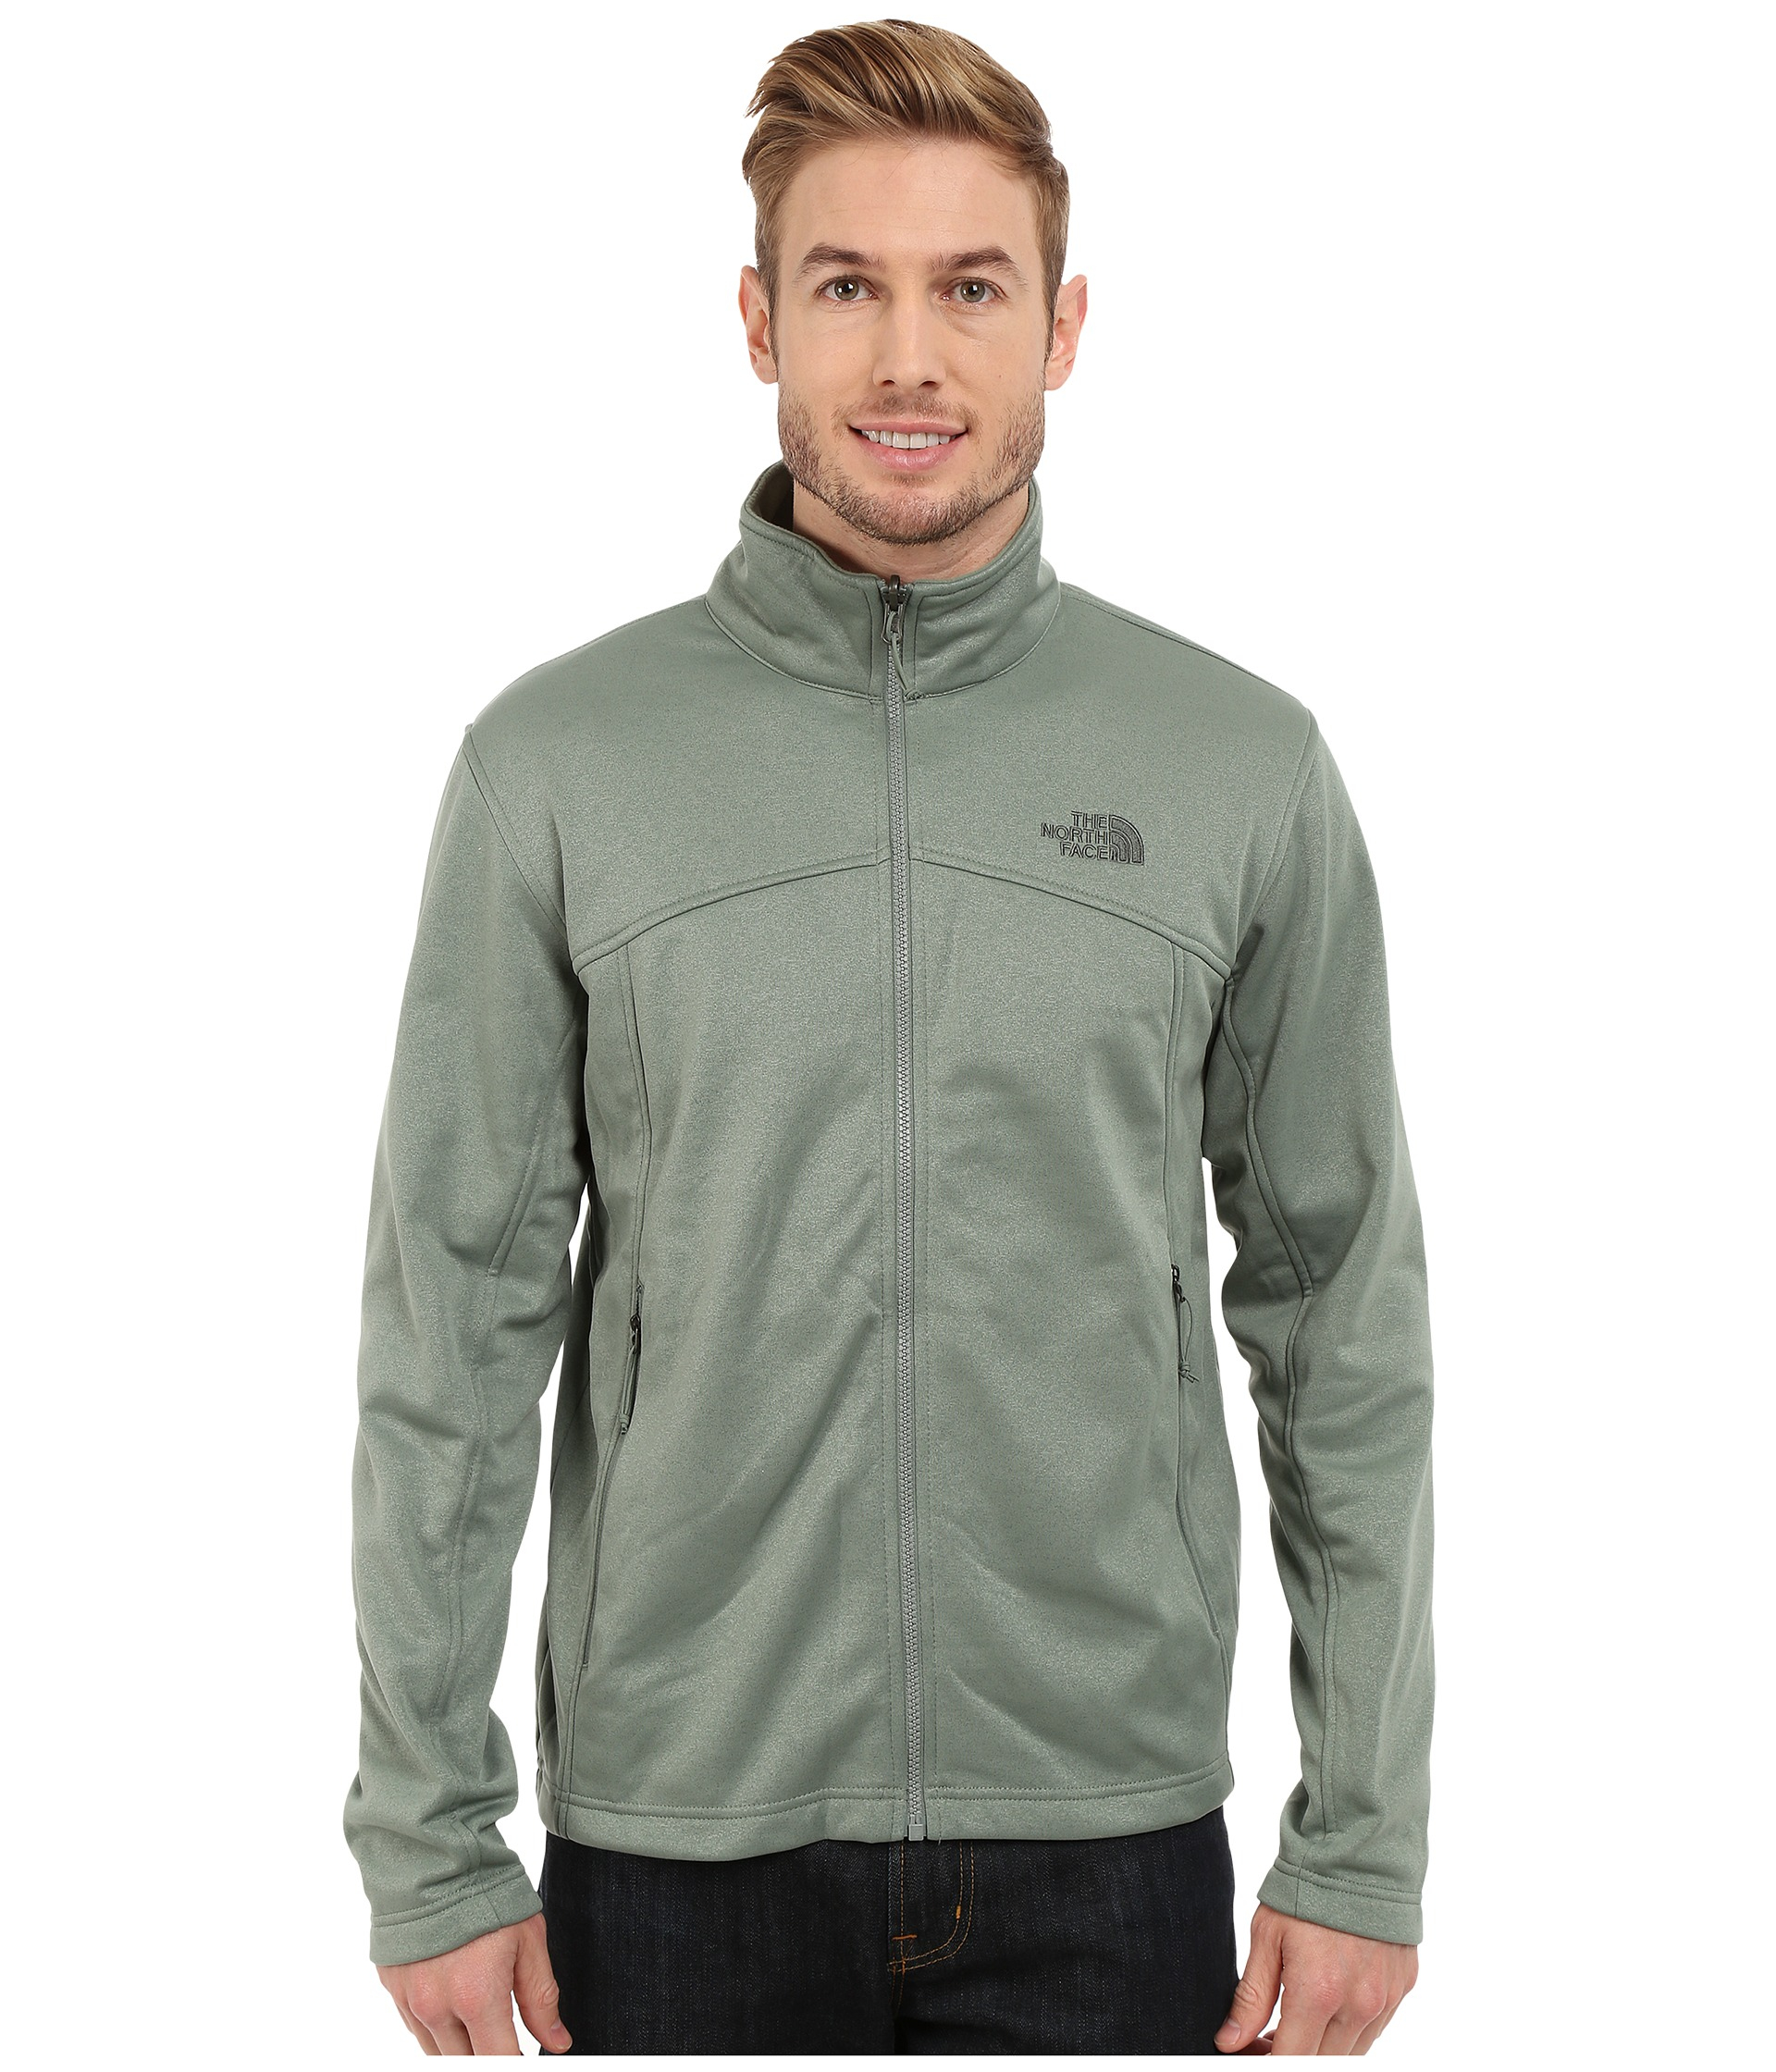 1e38cd756 new zealand the north face 3 in 1 atlas triclimate jacket mens ...